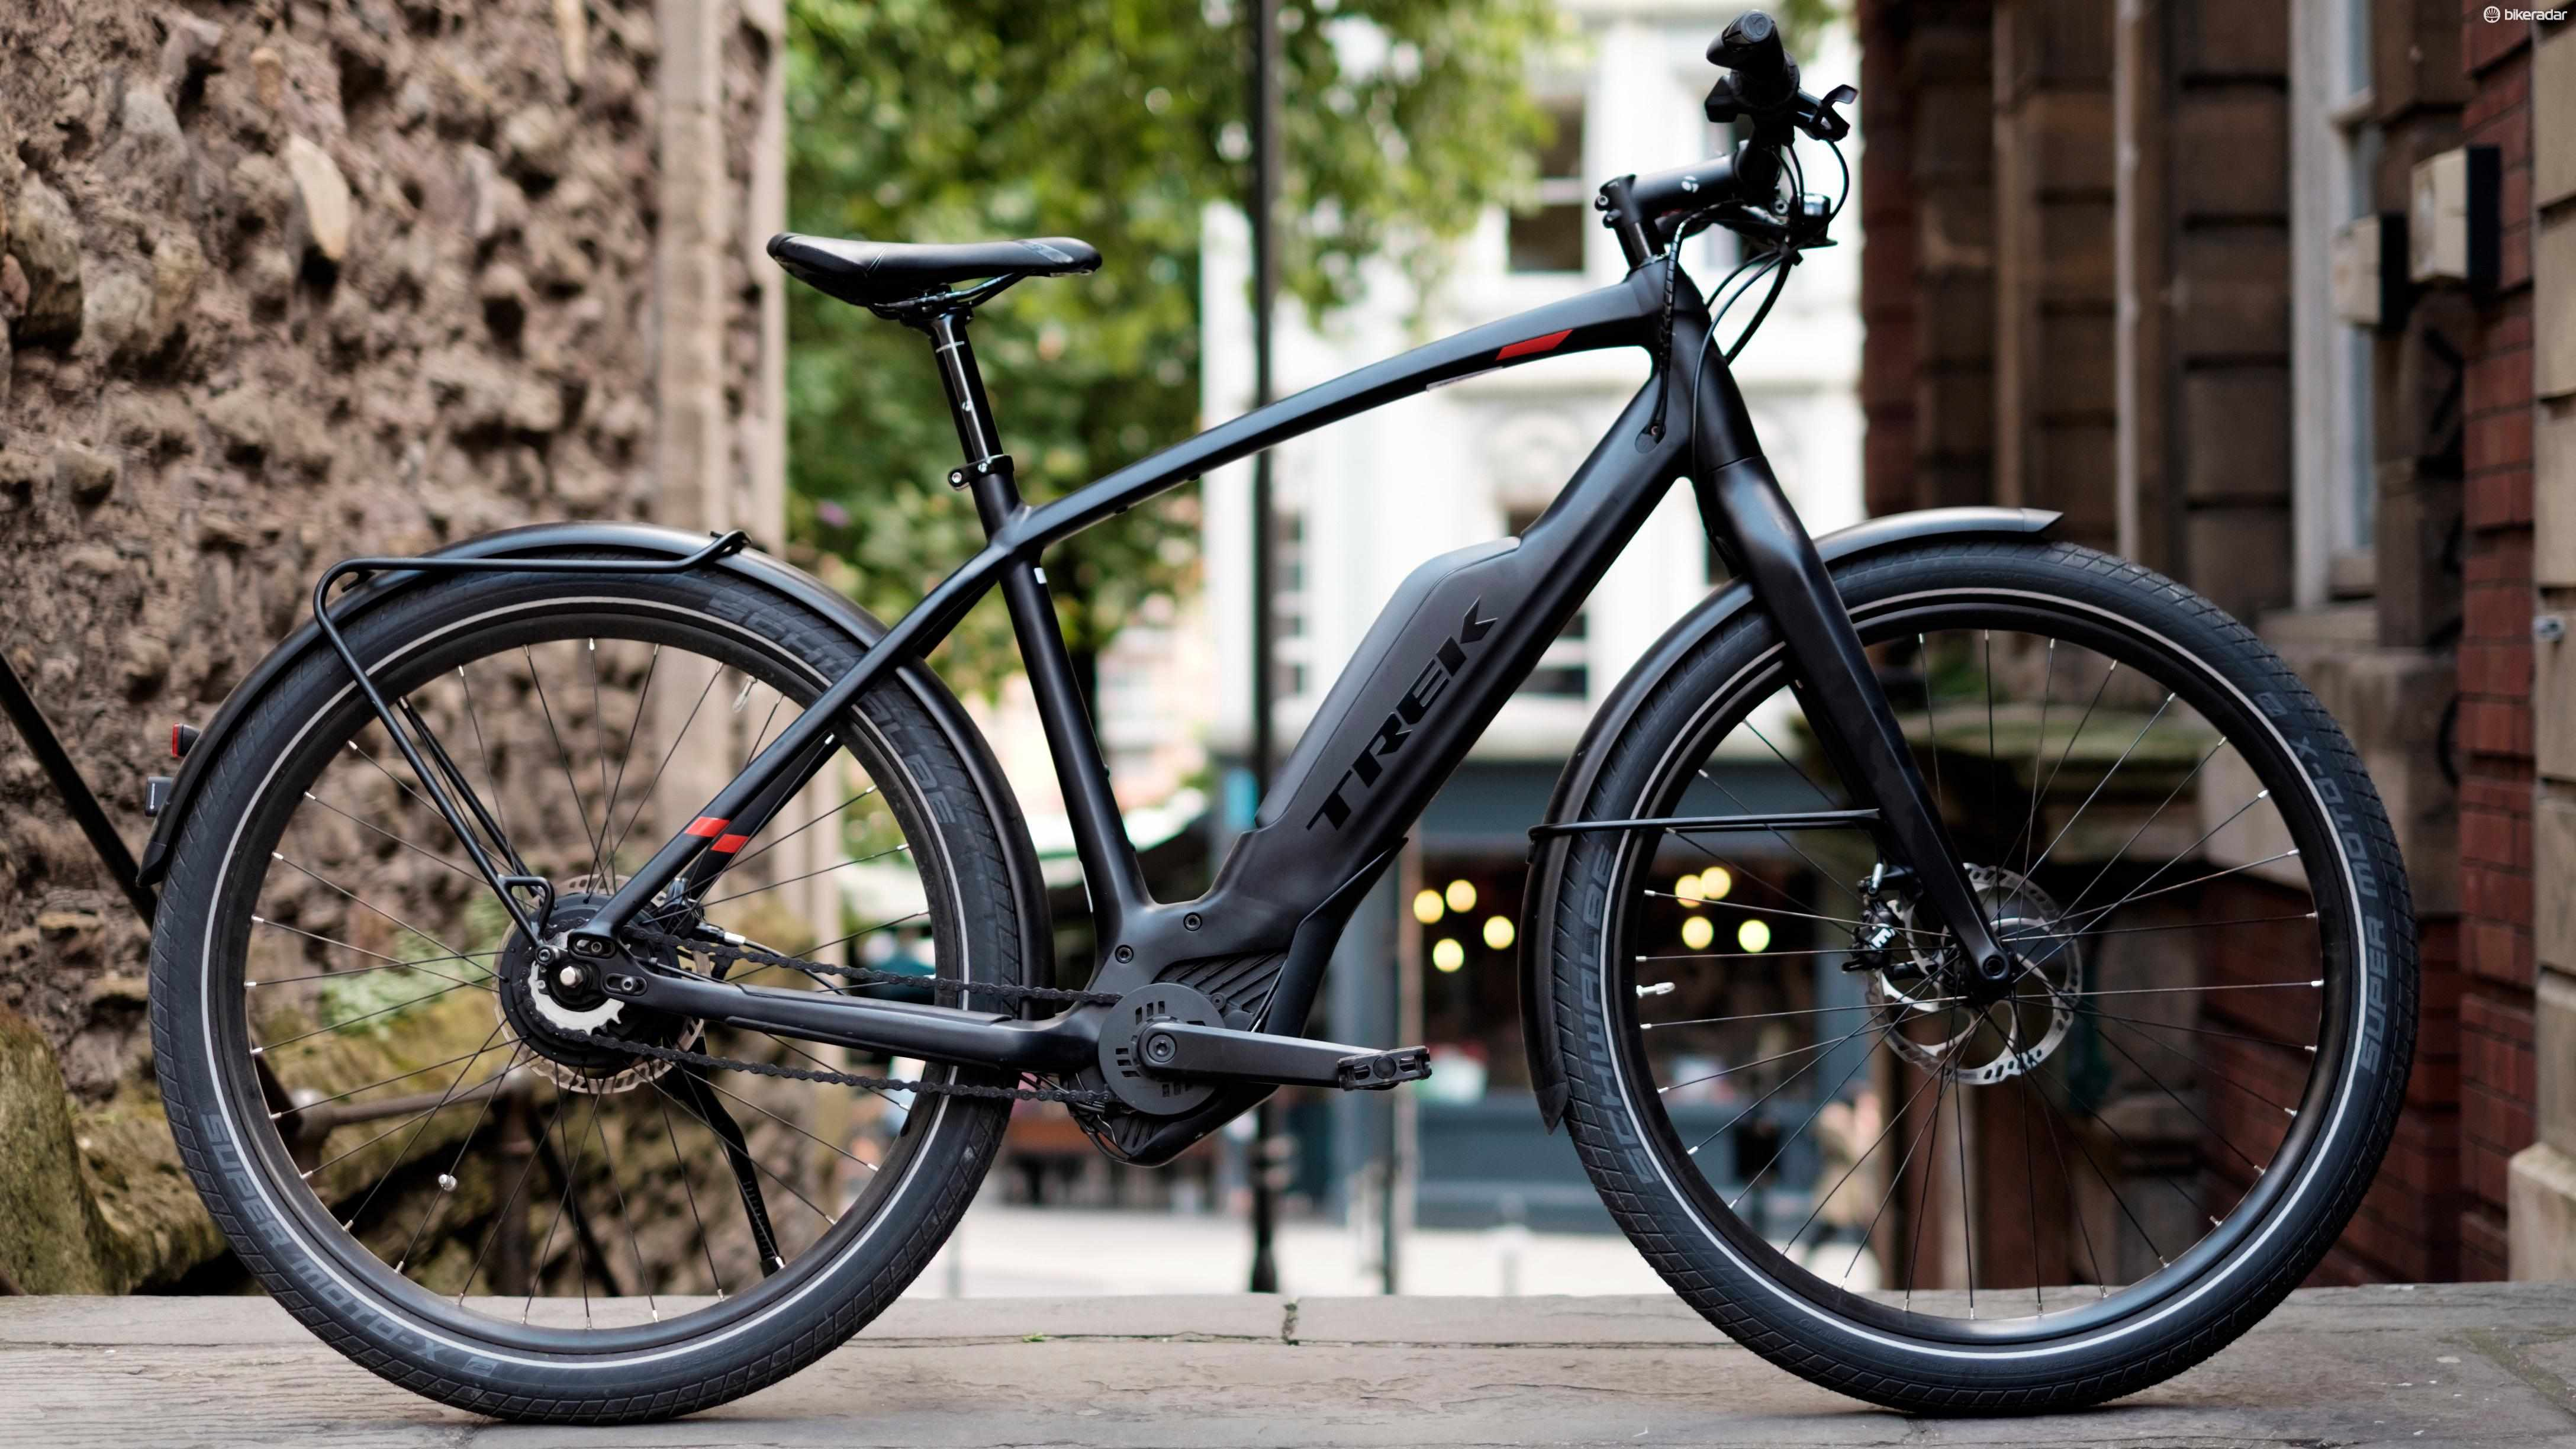 Trek's Super Commuter 9+ is a slick looking bike that attracts plenty of attention